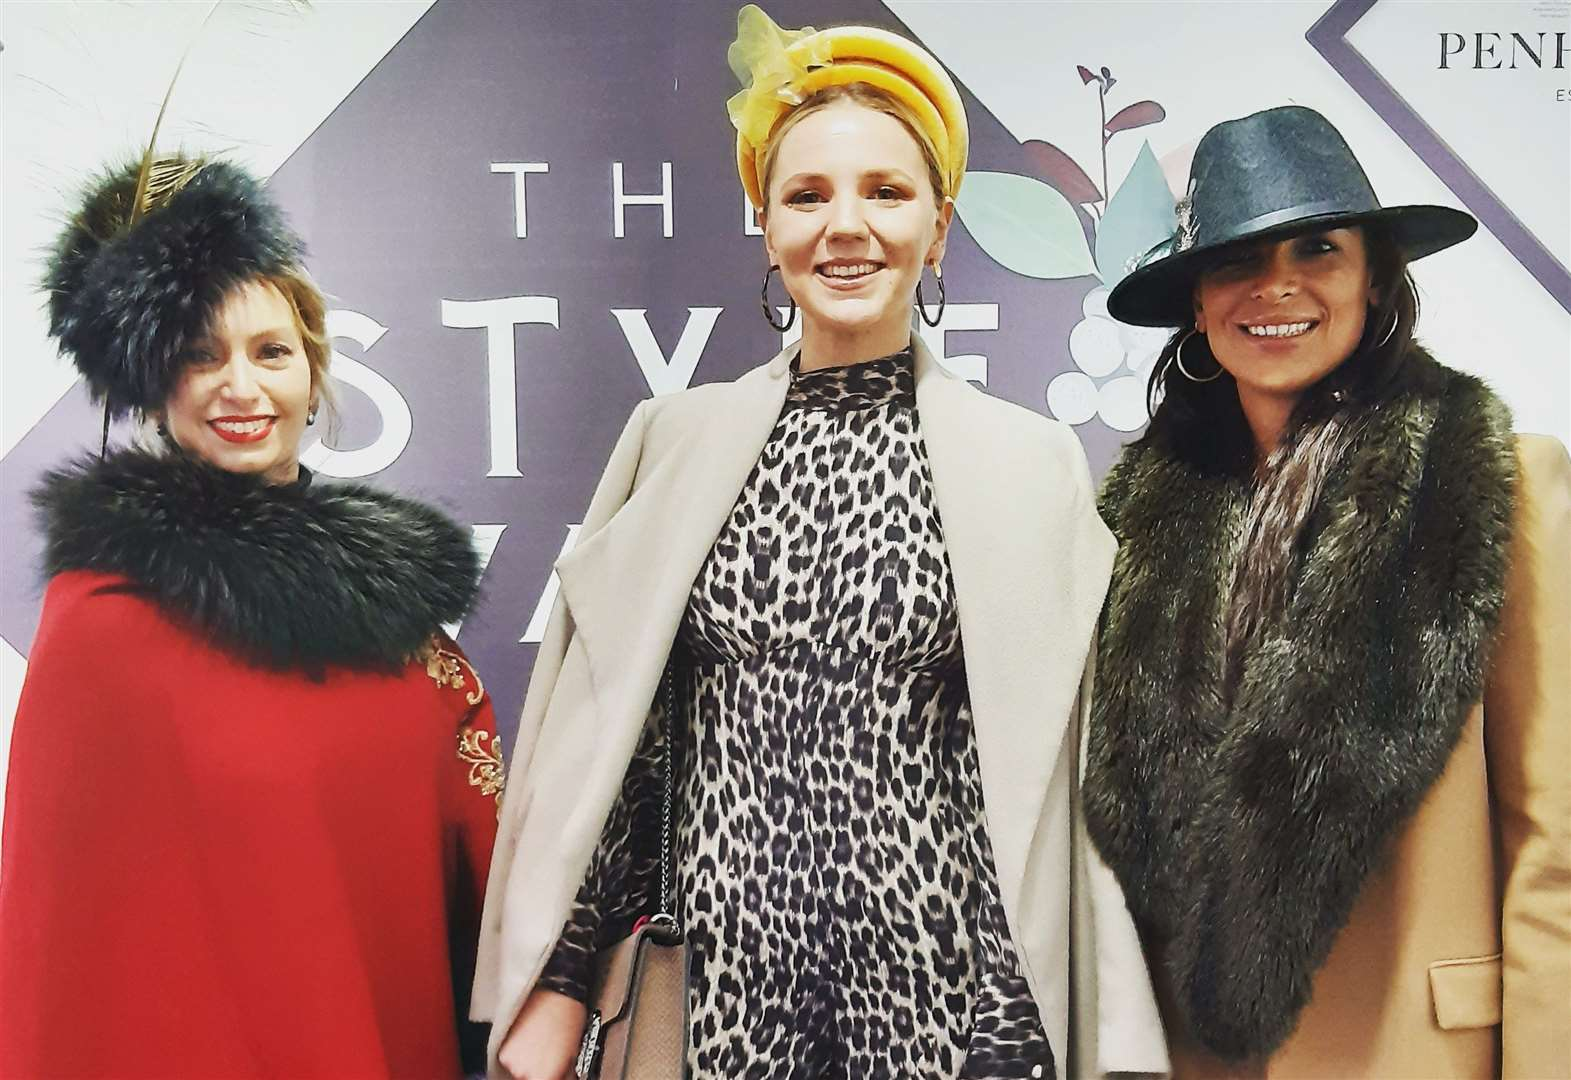 Autumn Ladies' Day: Meet the woman crowned best dressed at Newmarket